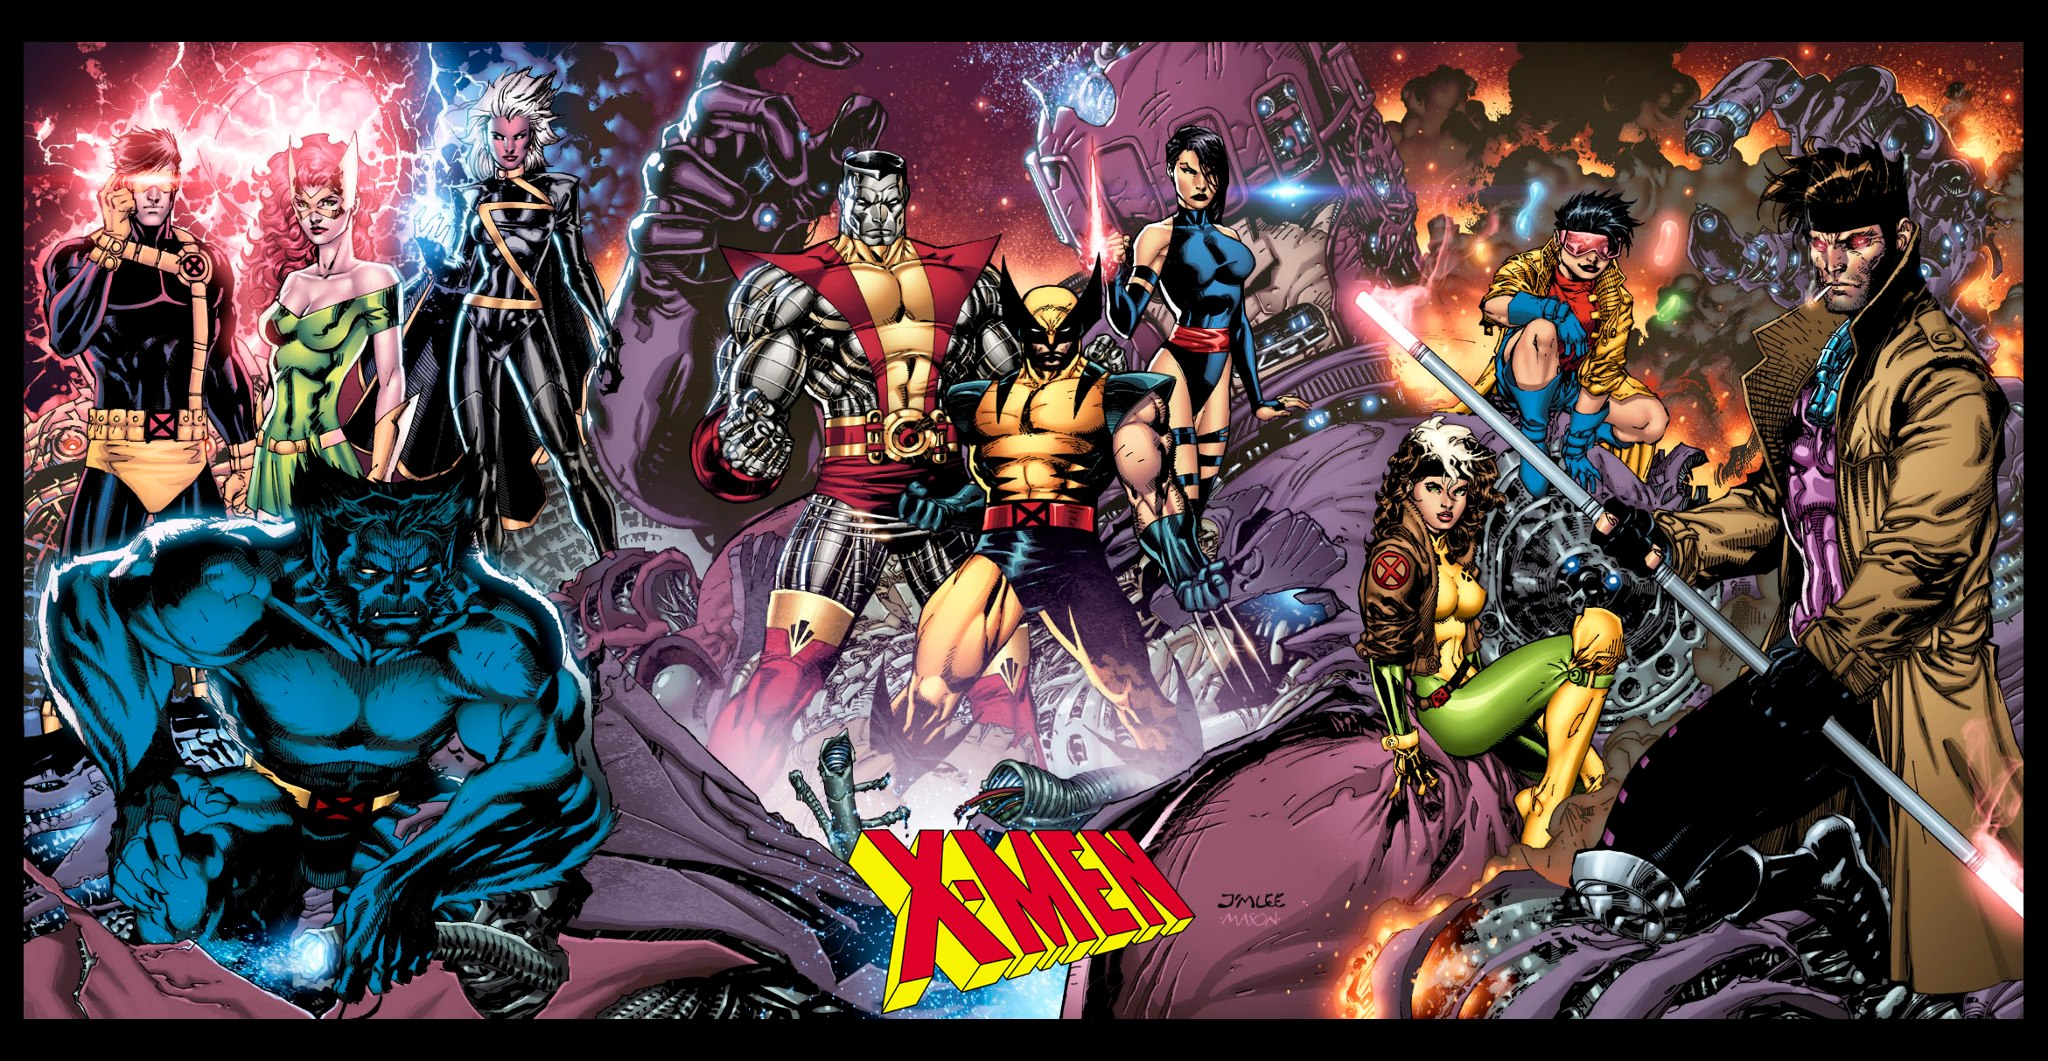 90s X Men Computer Wallpapers Desktop Backgrounds 2048x1061 ID 2048x1061